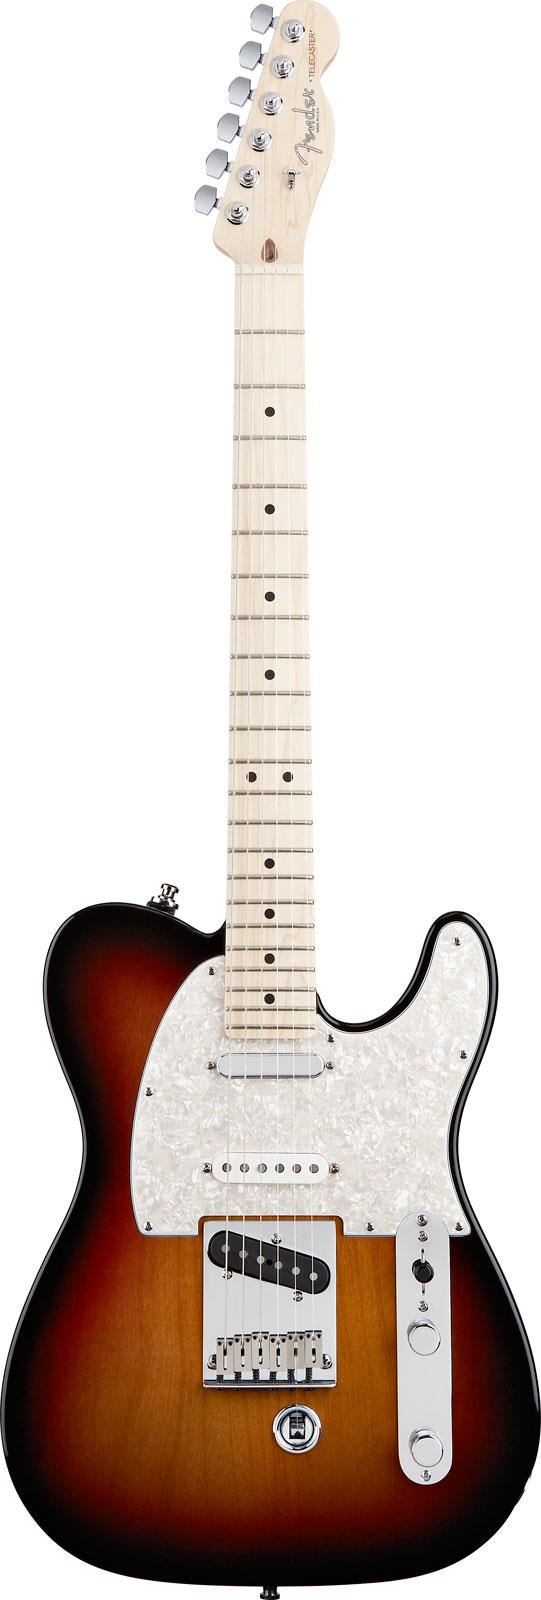 fender american nashville b bender telecaster 3 color sunburst keymusic. Black Bedroom Furniture Sets. Home Design Ideas